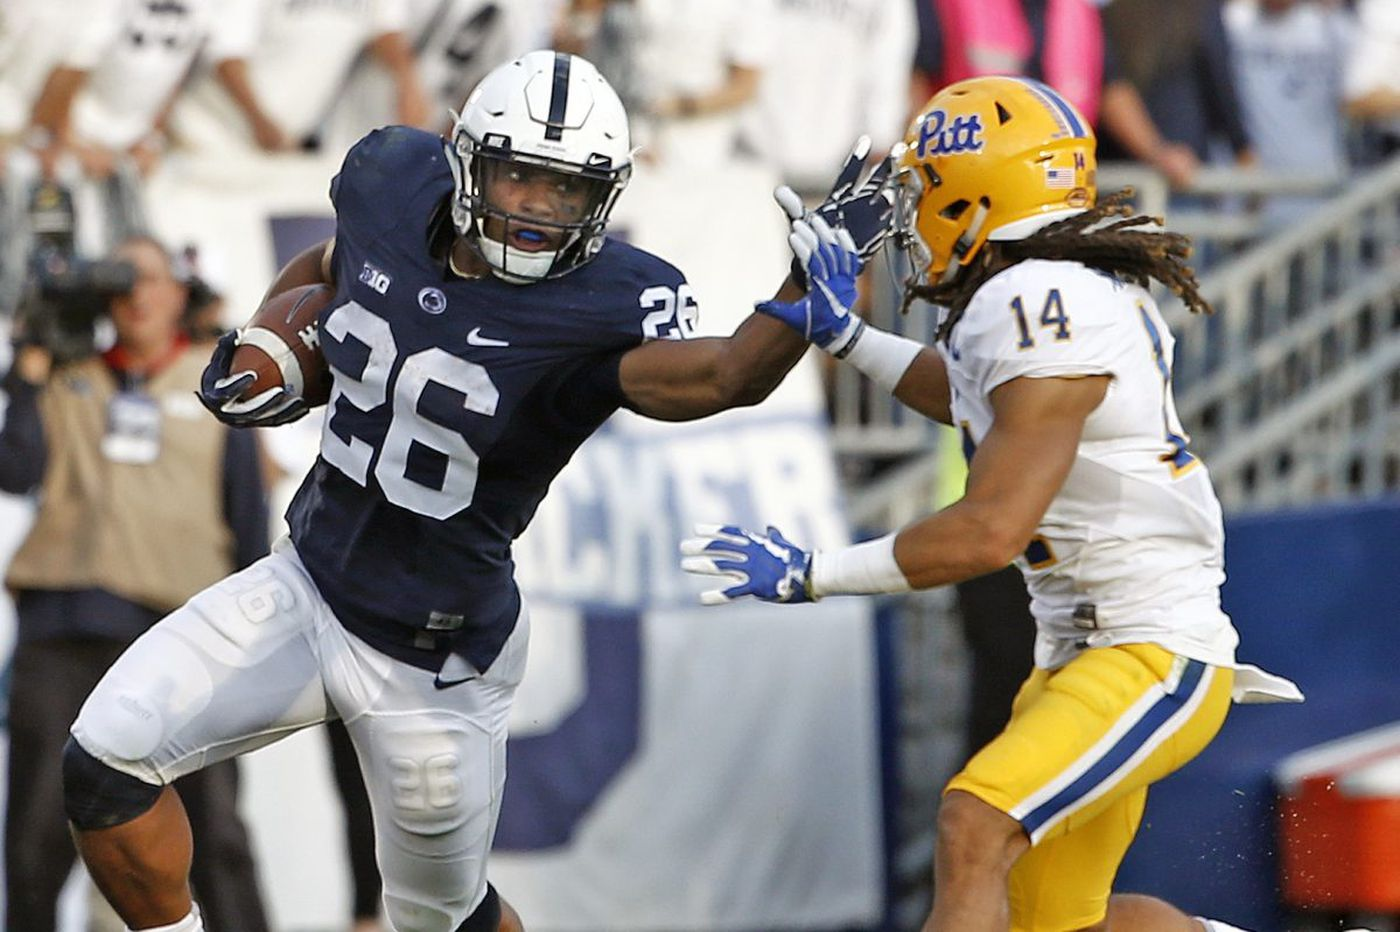 Penn State and Pittsburgh will renew their rivalry at night on Sept. 8